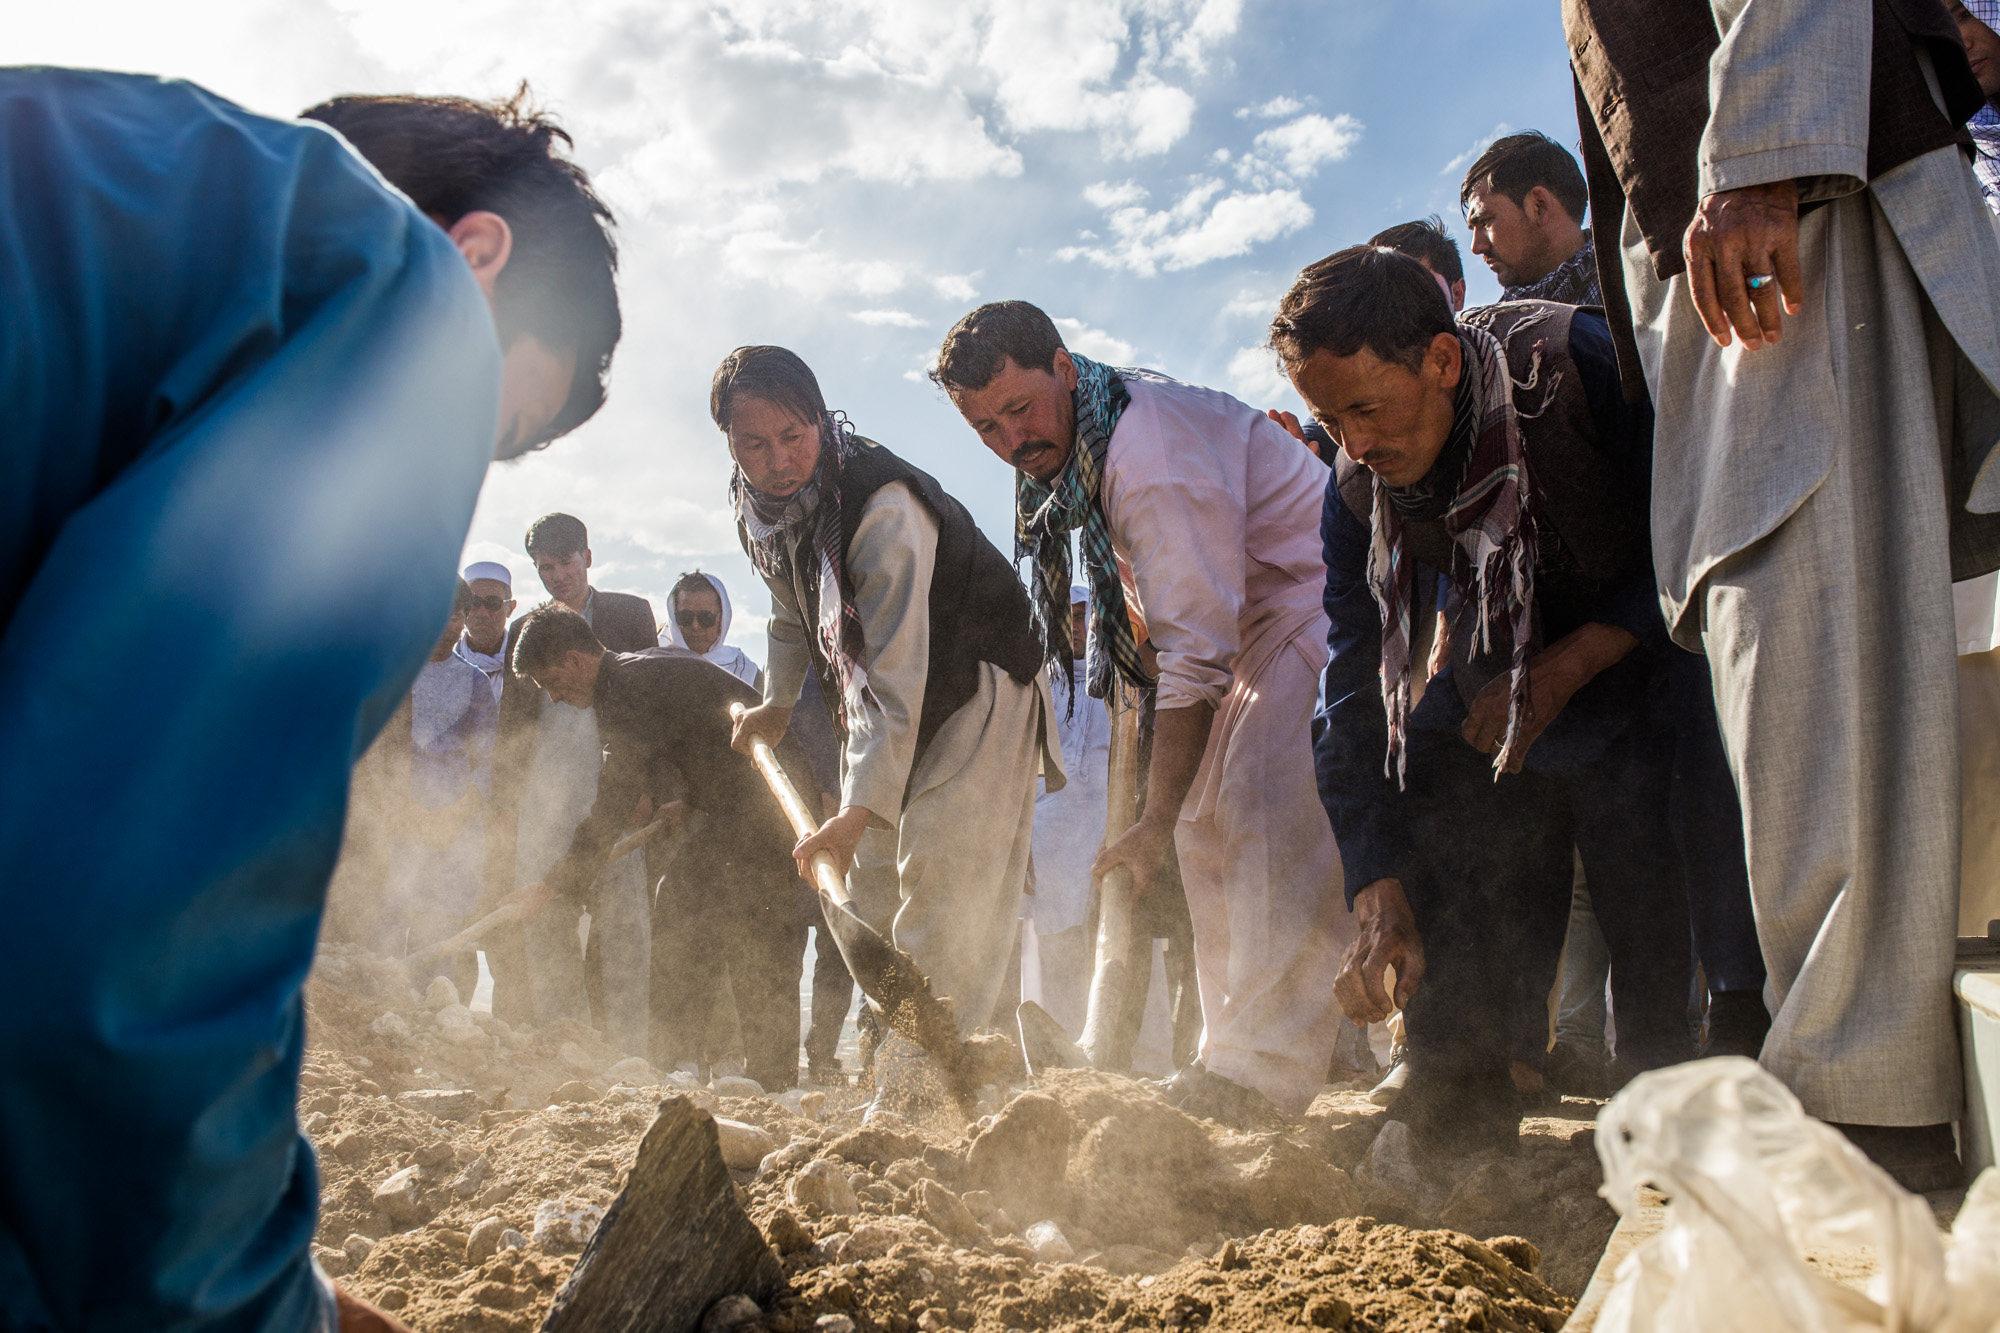 Friends and family bury the body of Rahmatullah Nasiry, a young teacher and journalist killed in the massive May 31st truck bombing in Kabul's green zone. Kabul, 2017.